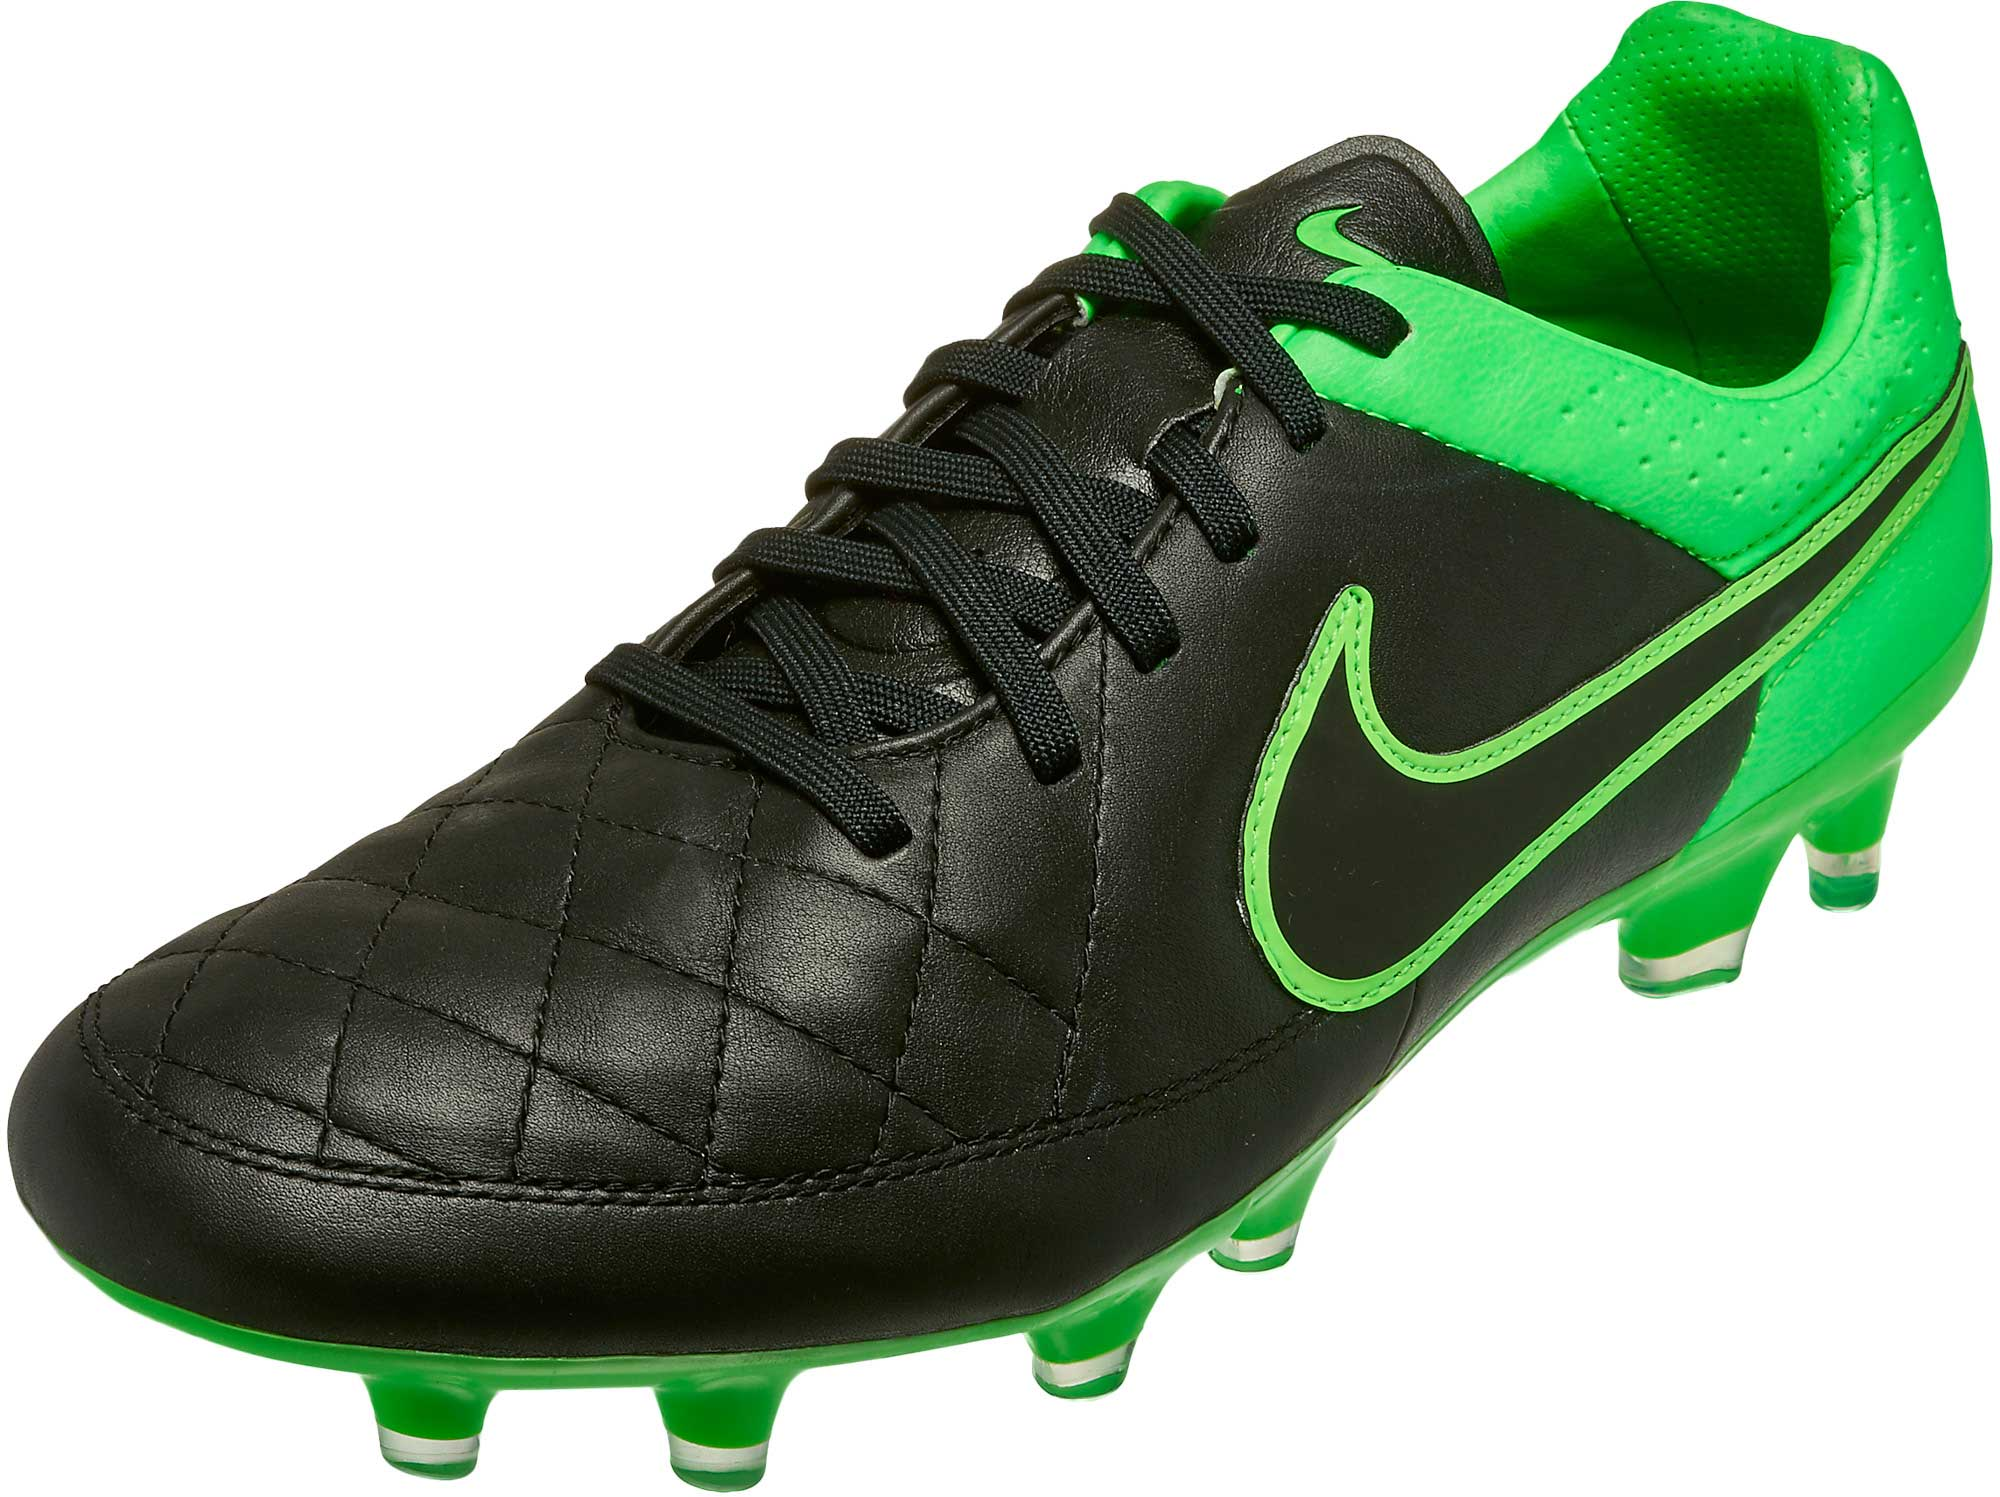 f979a6cb6 Nike Tiempo Legend V FG Soccer Cleats – Black Green